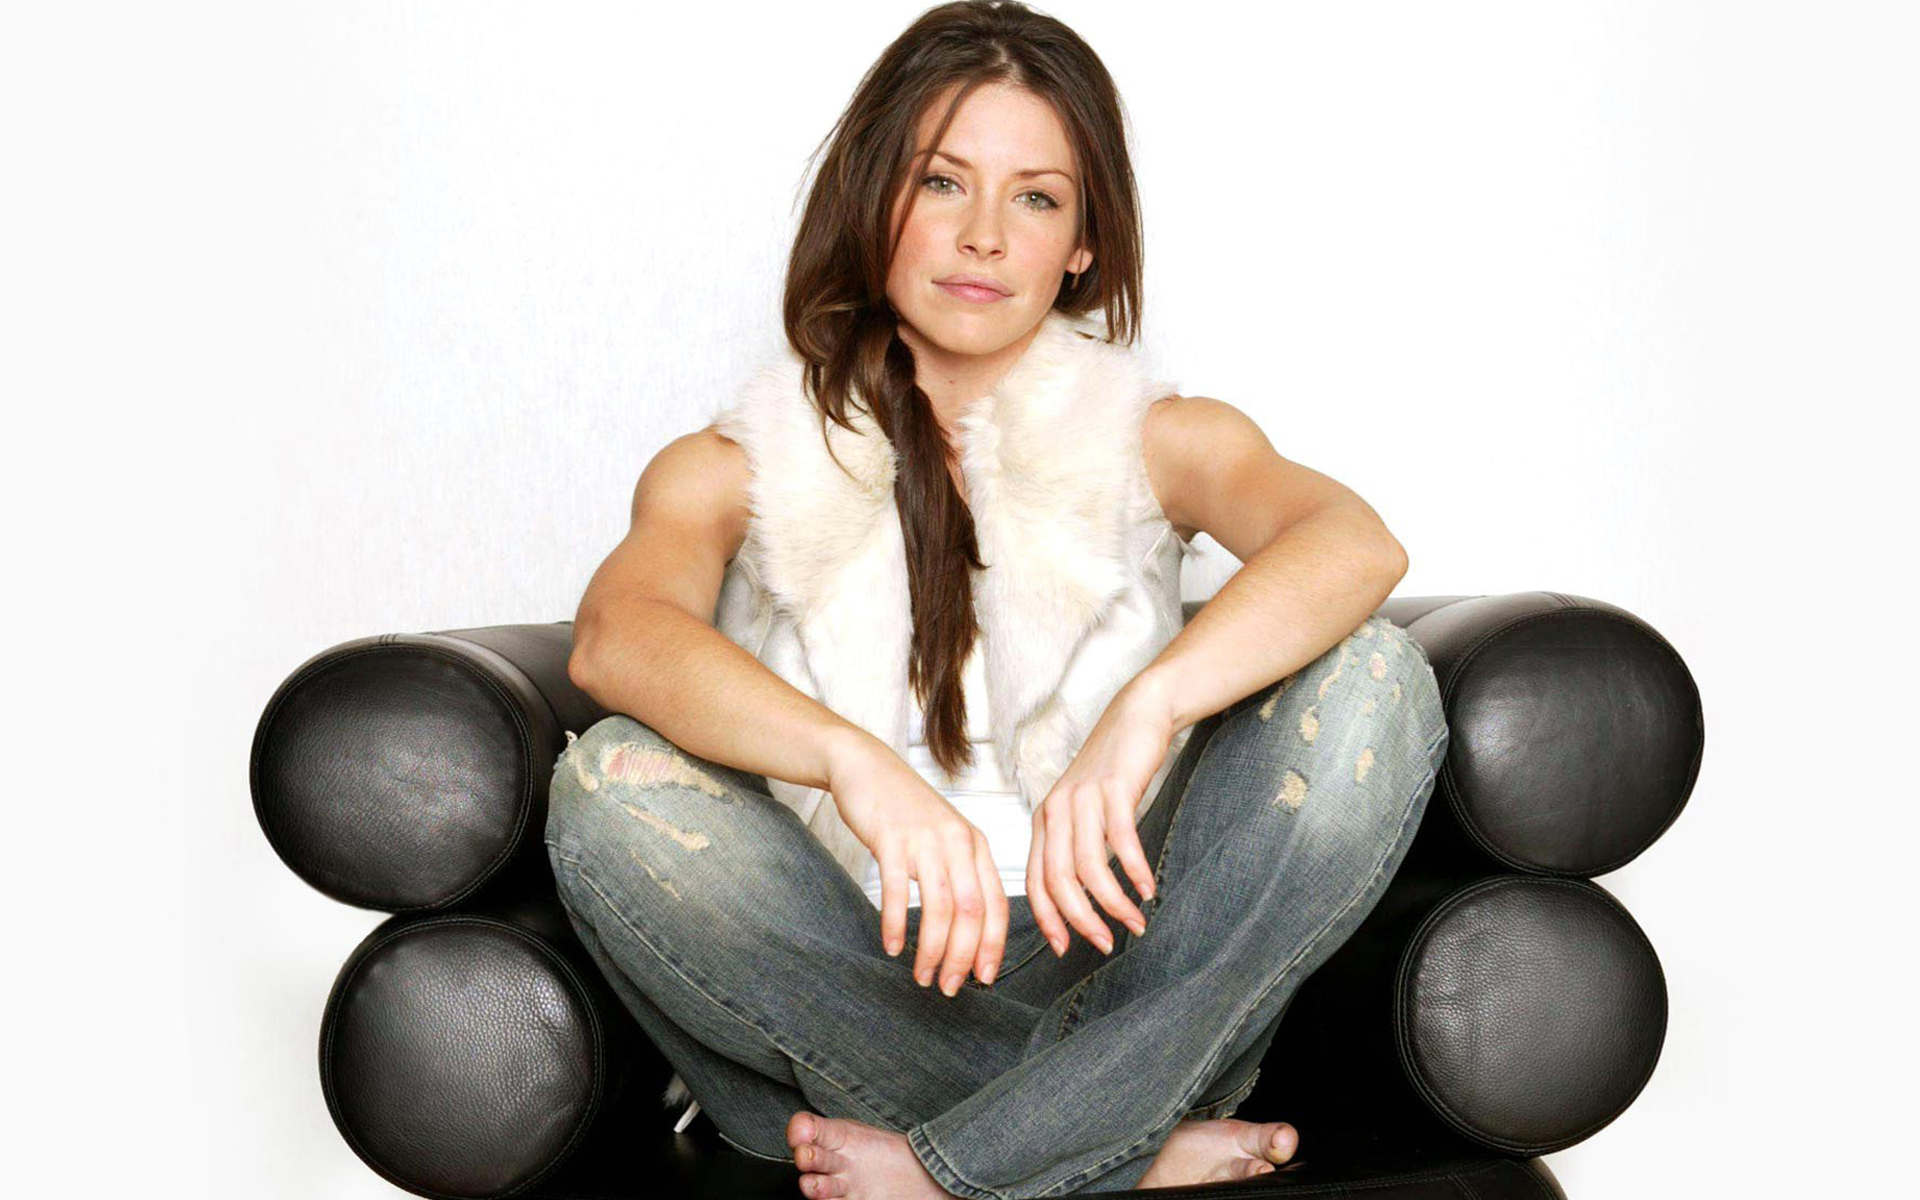 Evangeline Lilly 1920X1200 Wallpaper Evangeline Lilly Wall Paper 1920x1200